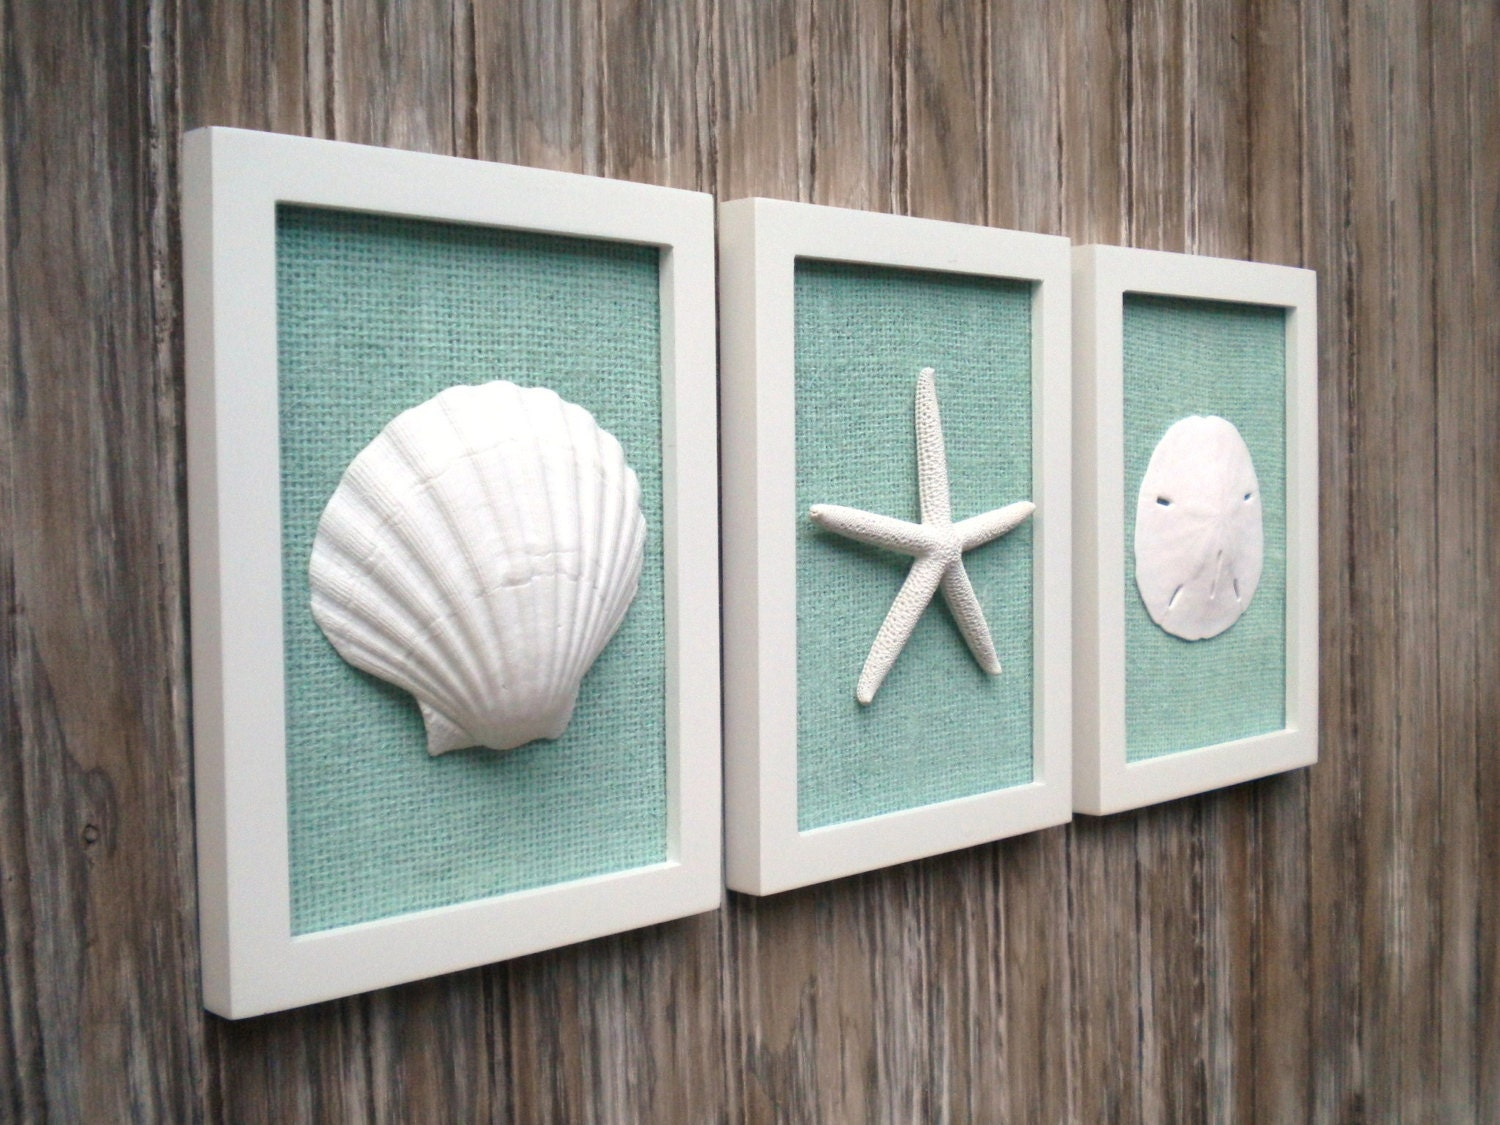 Costal Bathroom Decor: Cottage Chic Set Of Beach Wall Art Sea Shells Home Decor